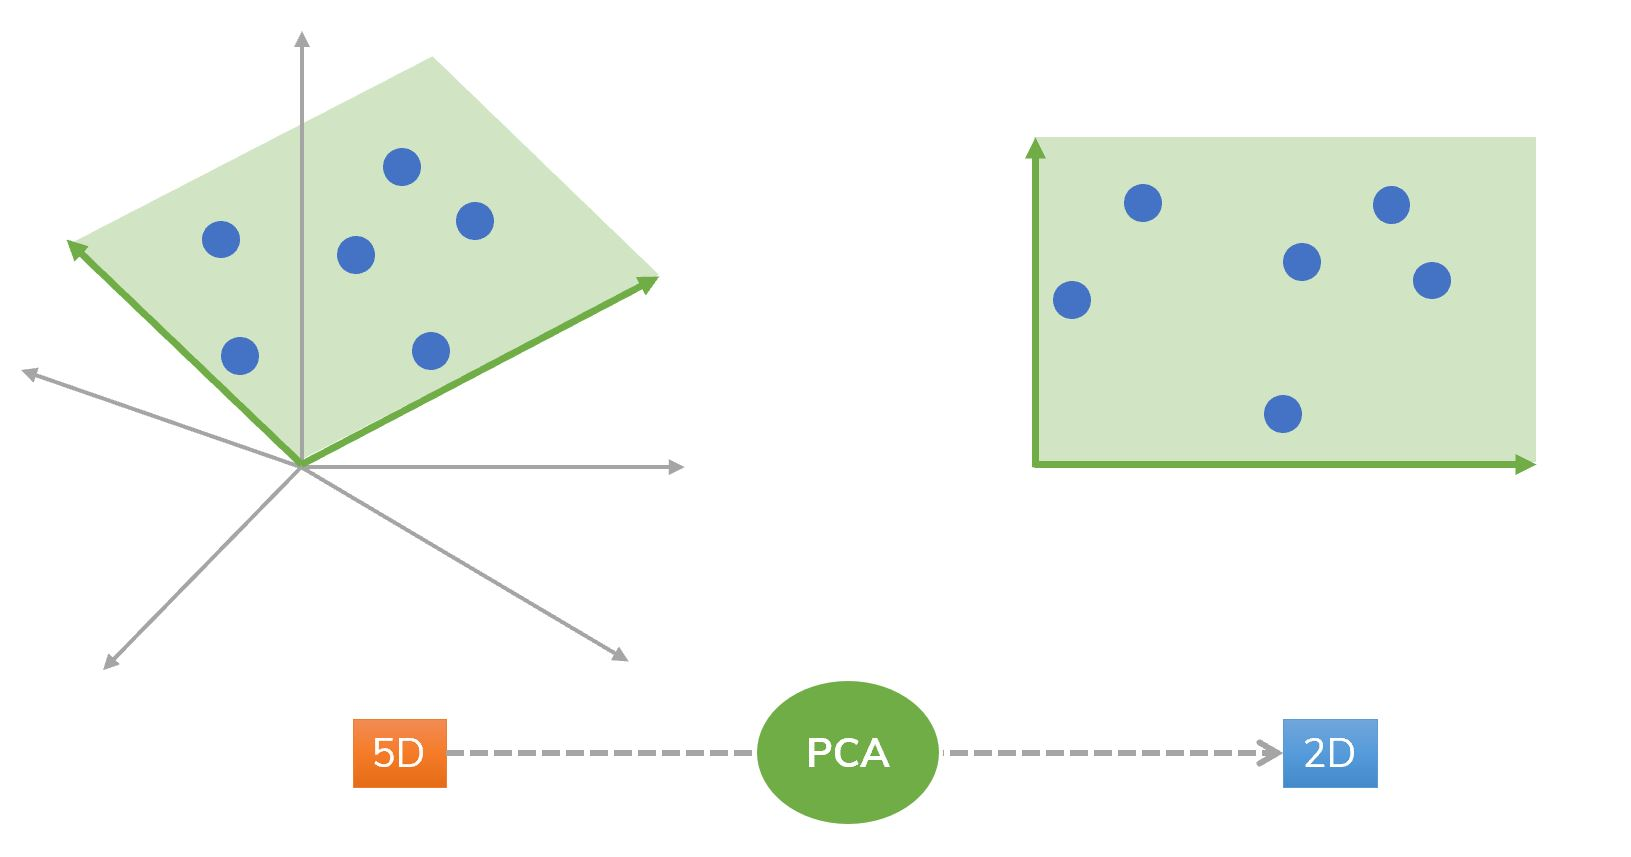 An idea of using PCA from 5D to 2D.